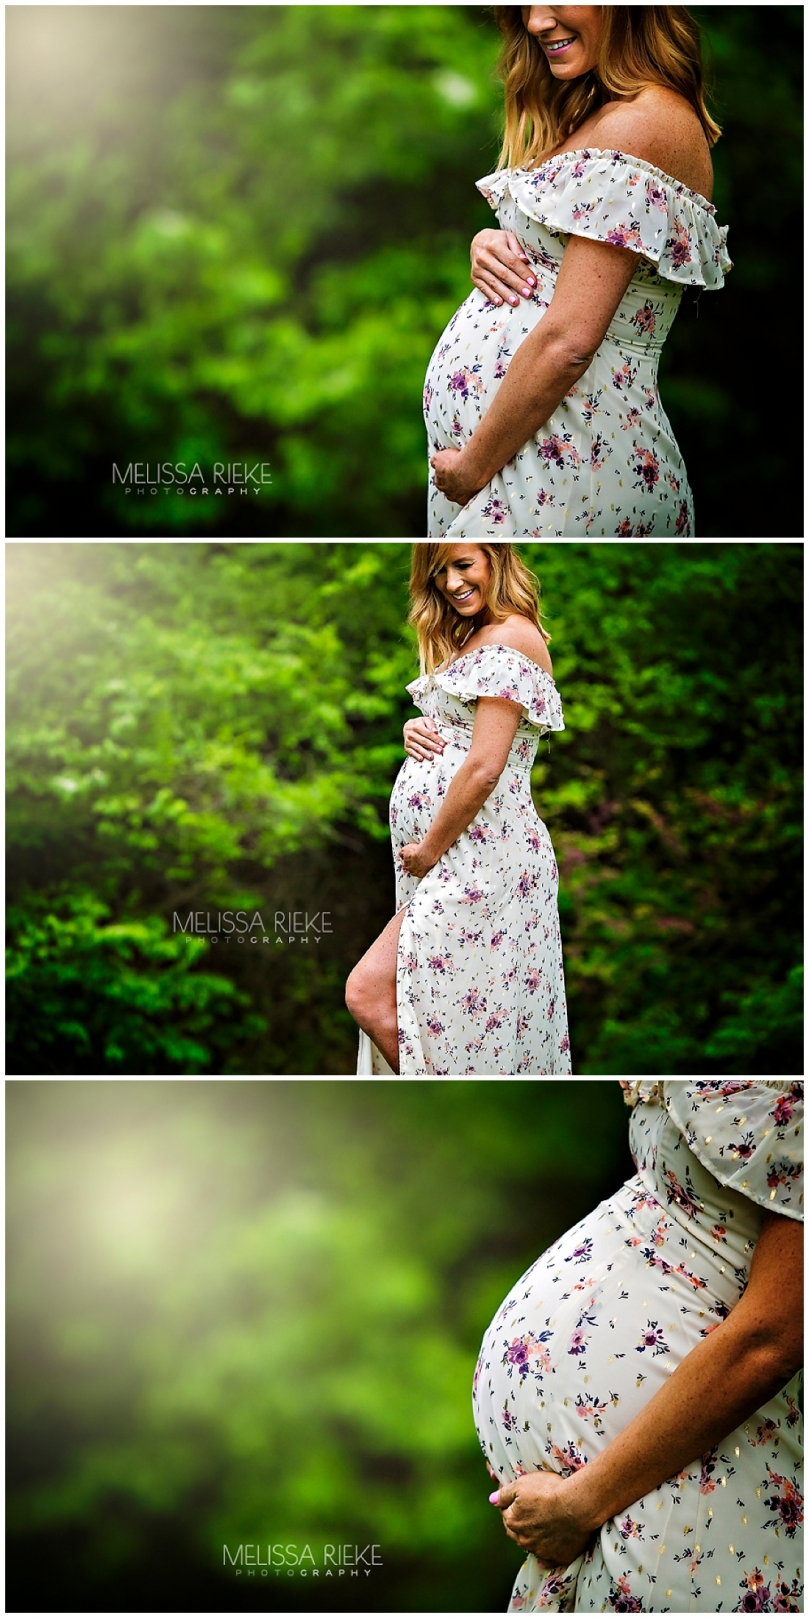 Shawnee Maternity Photographer Kansas City Baby Bump Photography